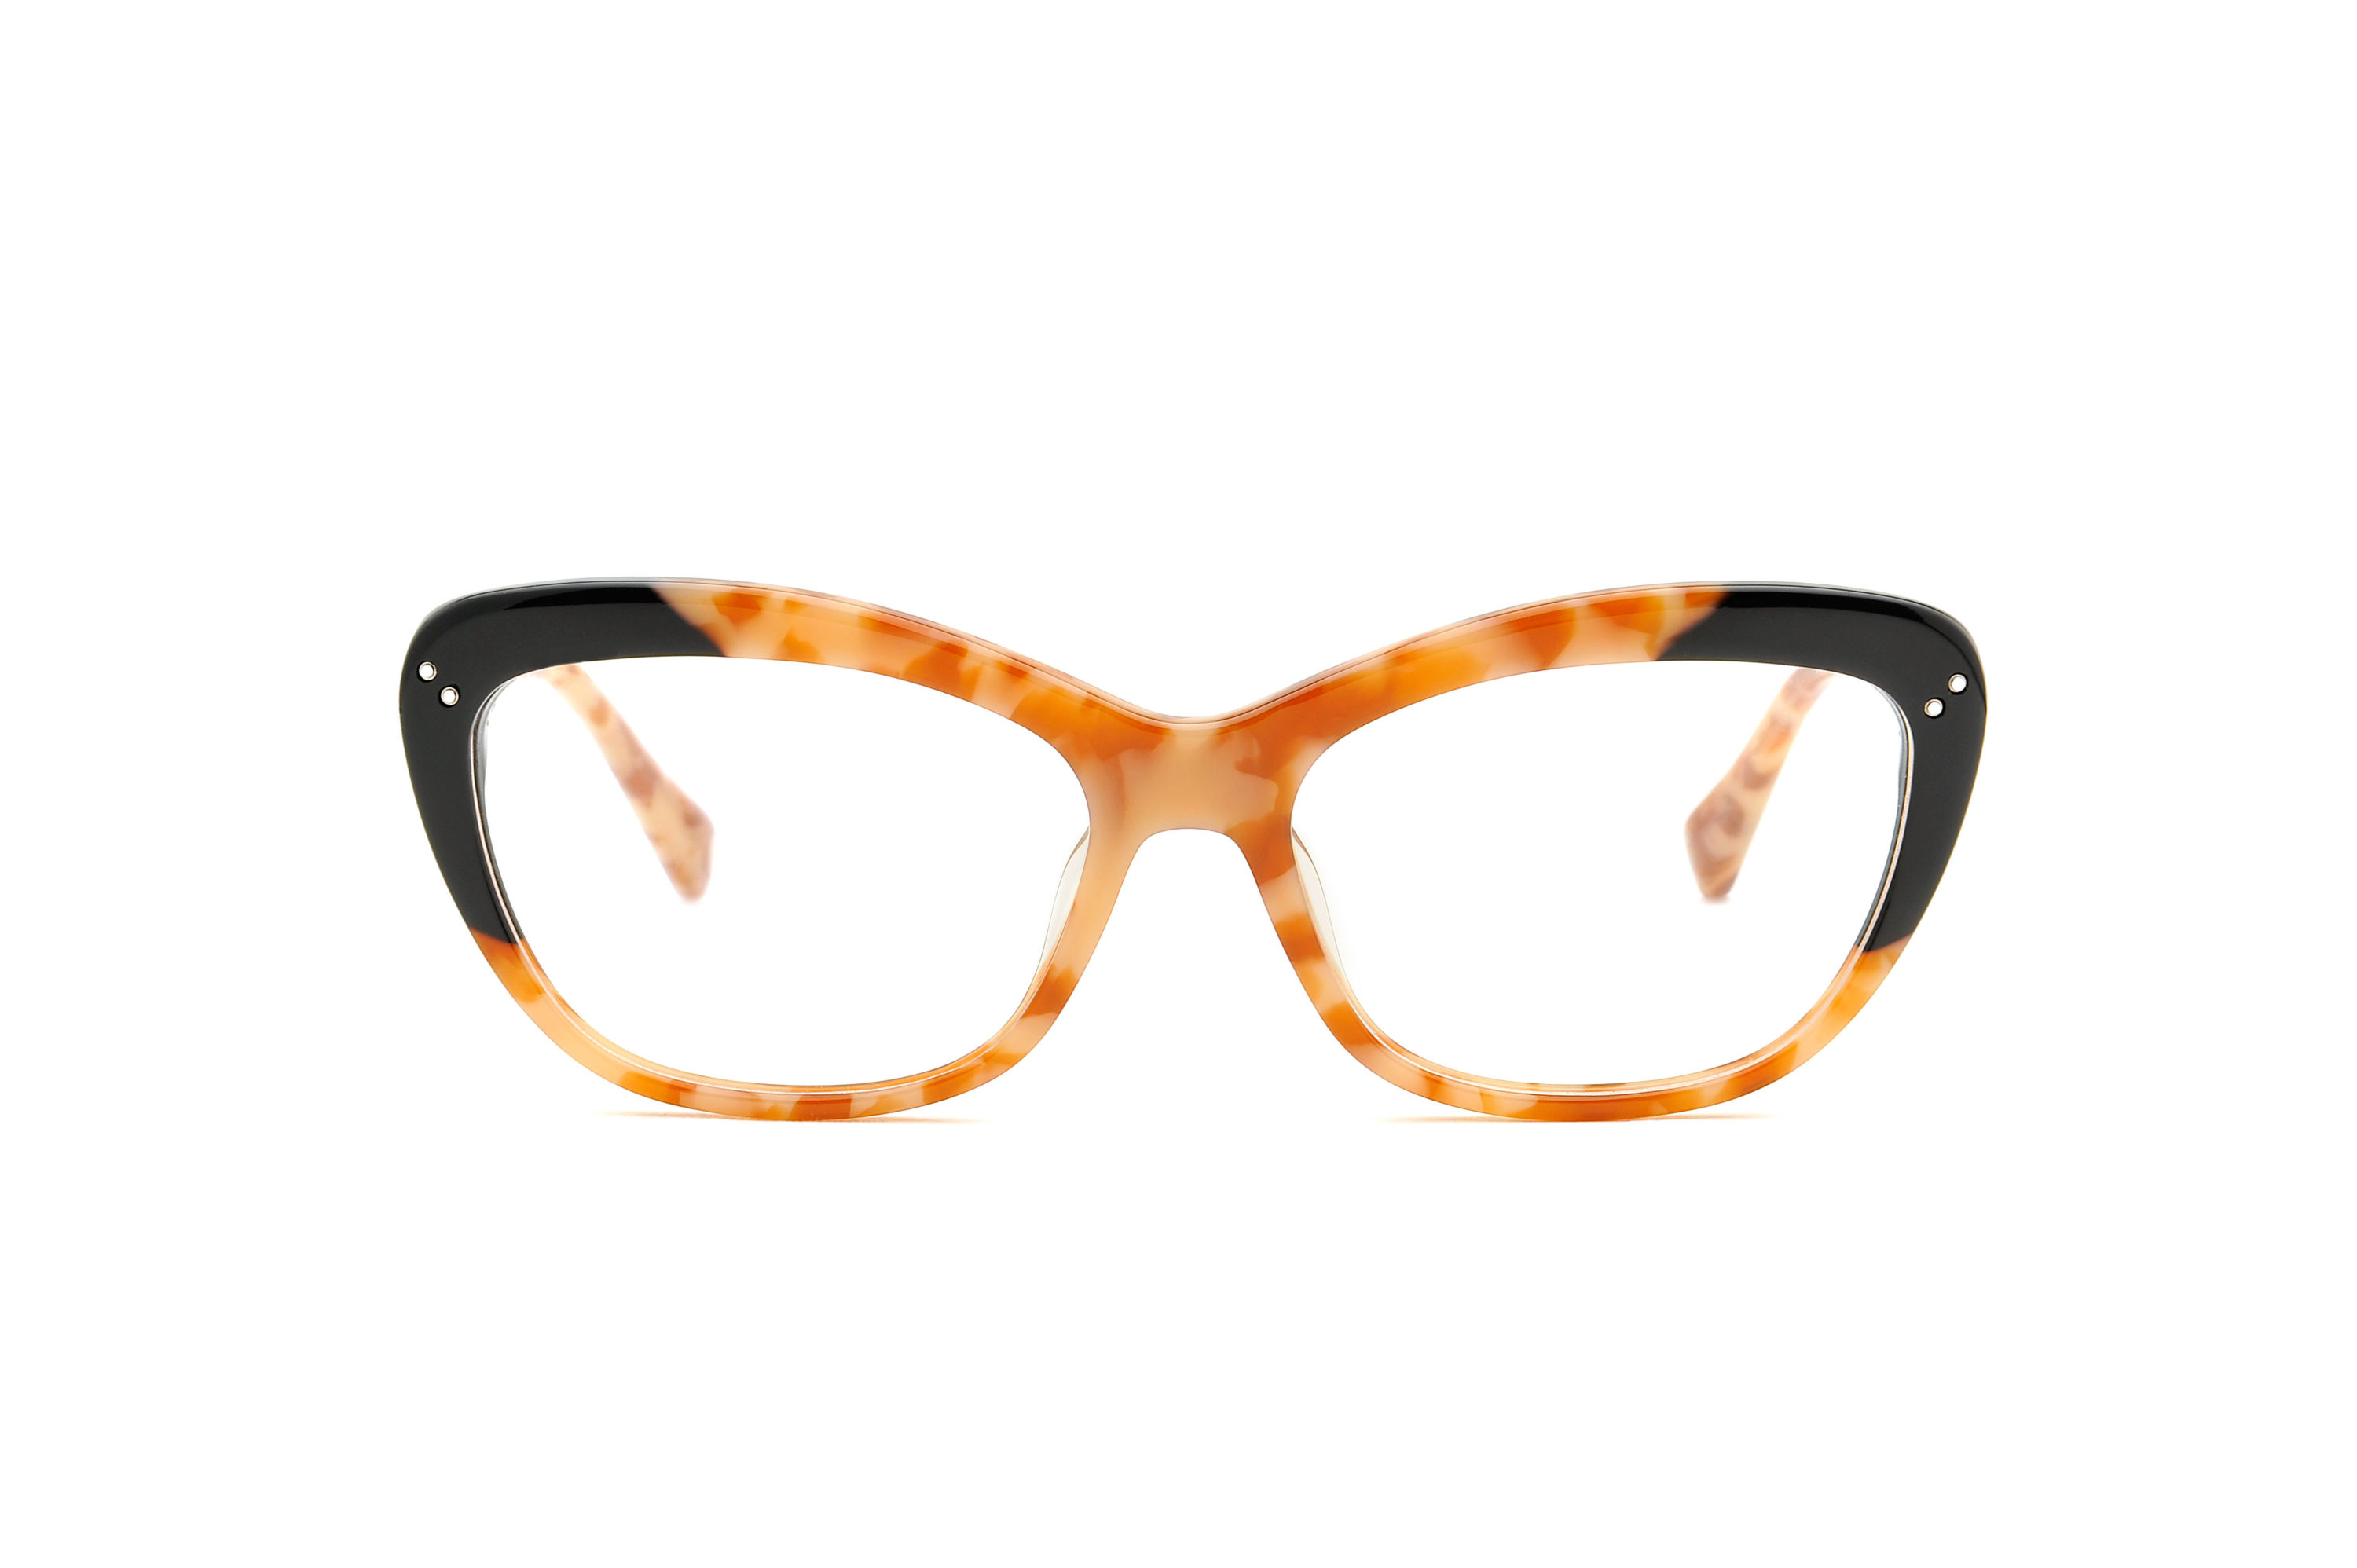 Sunshine  acetate tortoise sunglasses by GIGI Studios